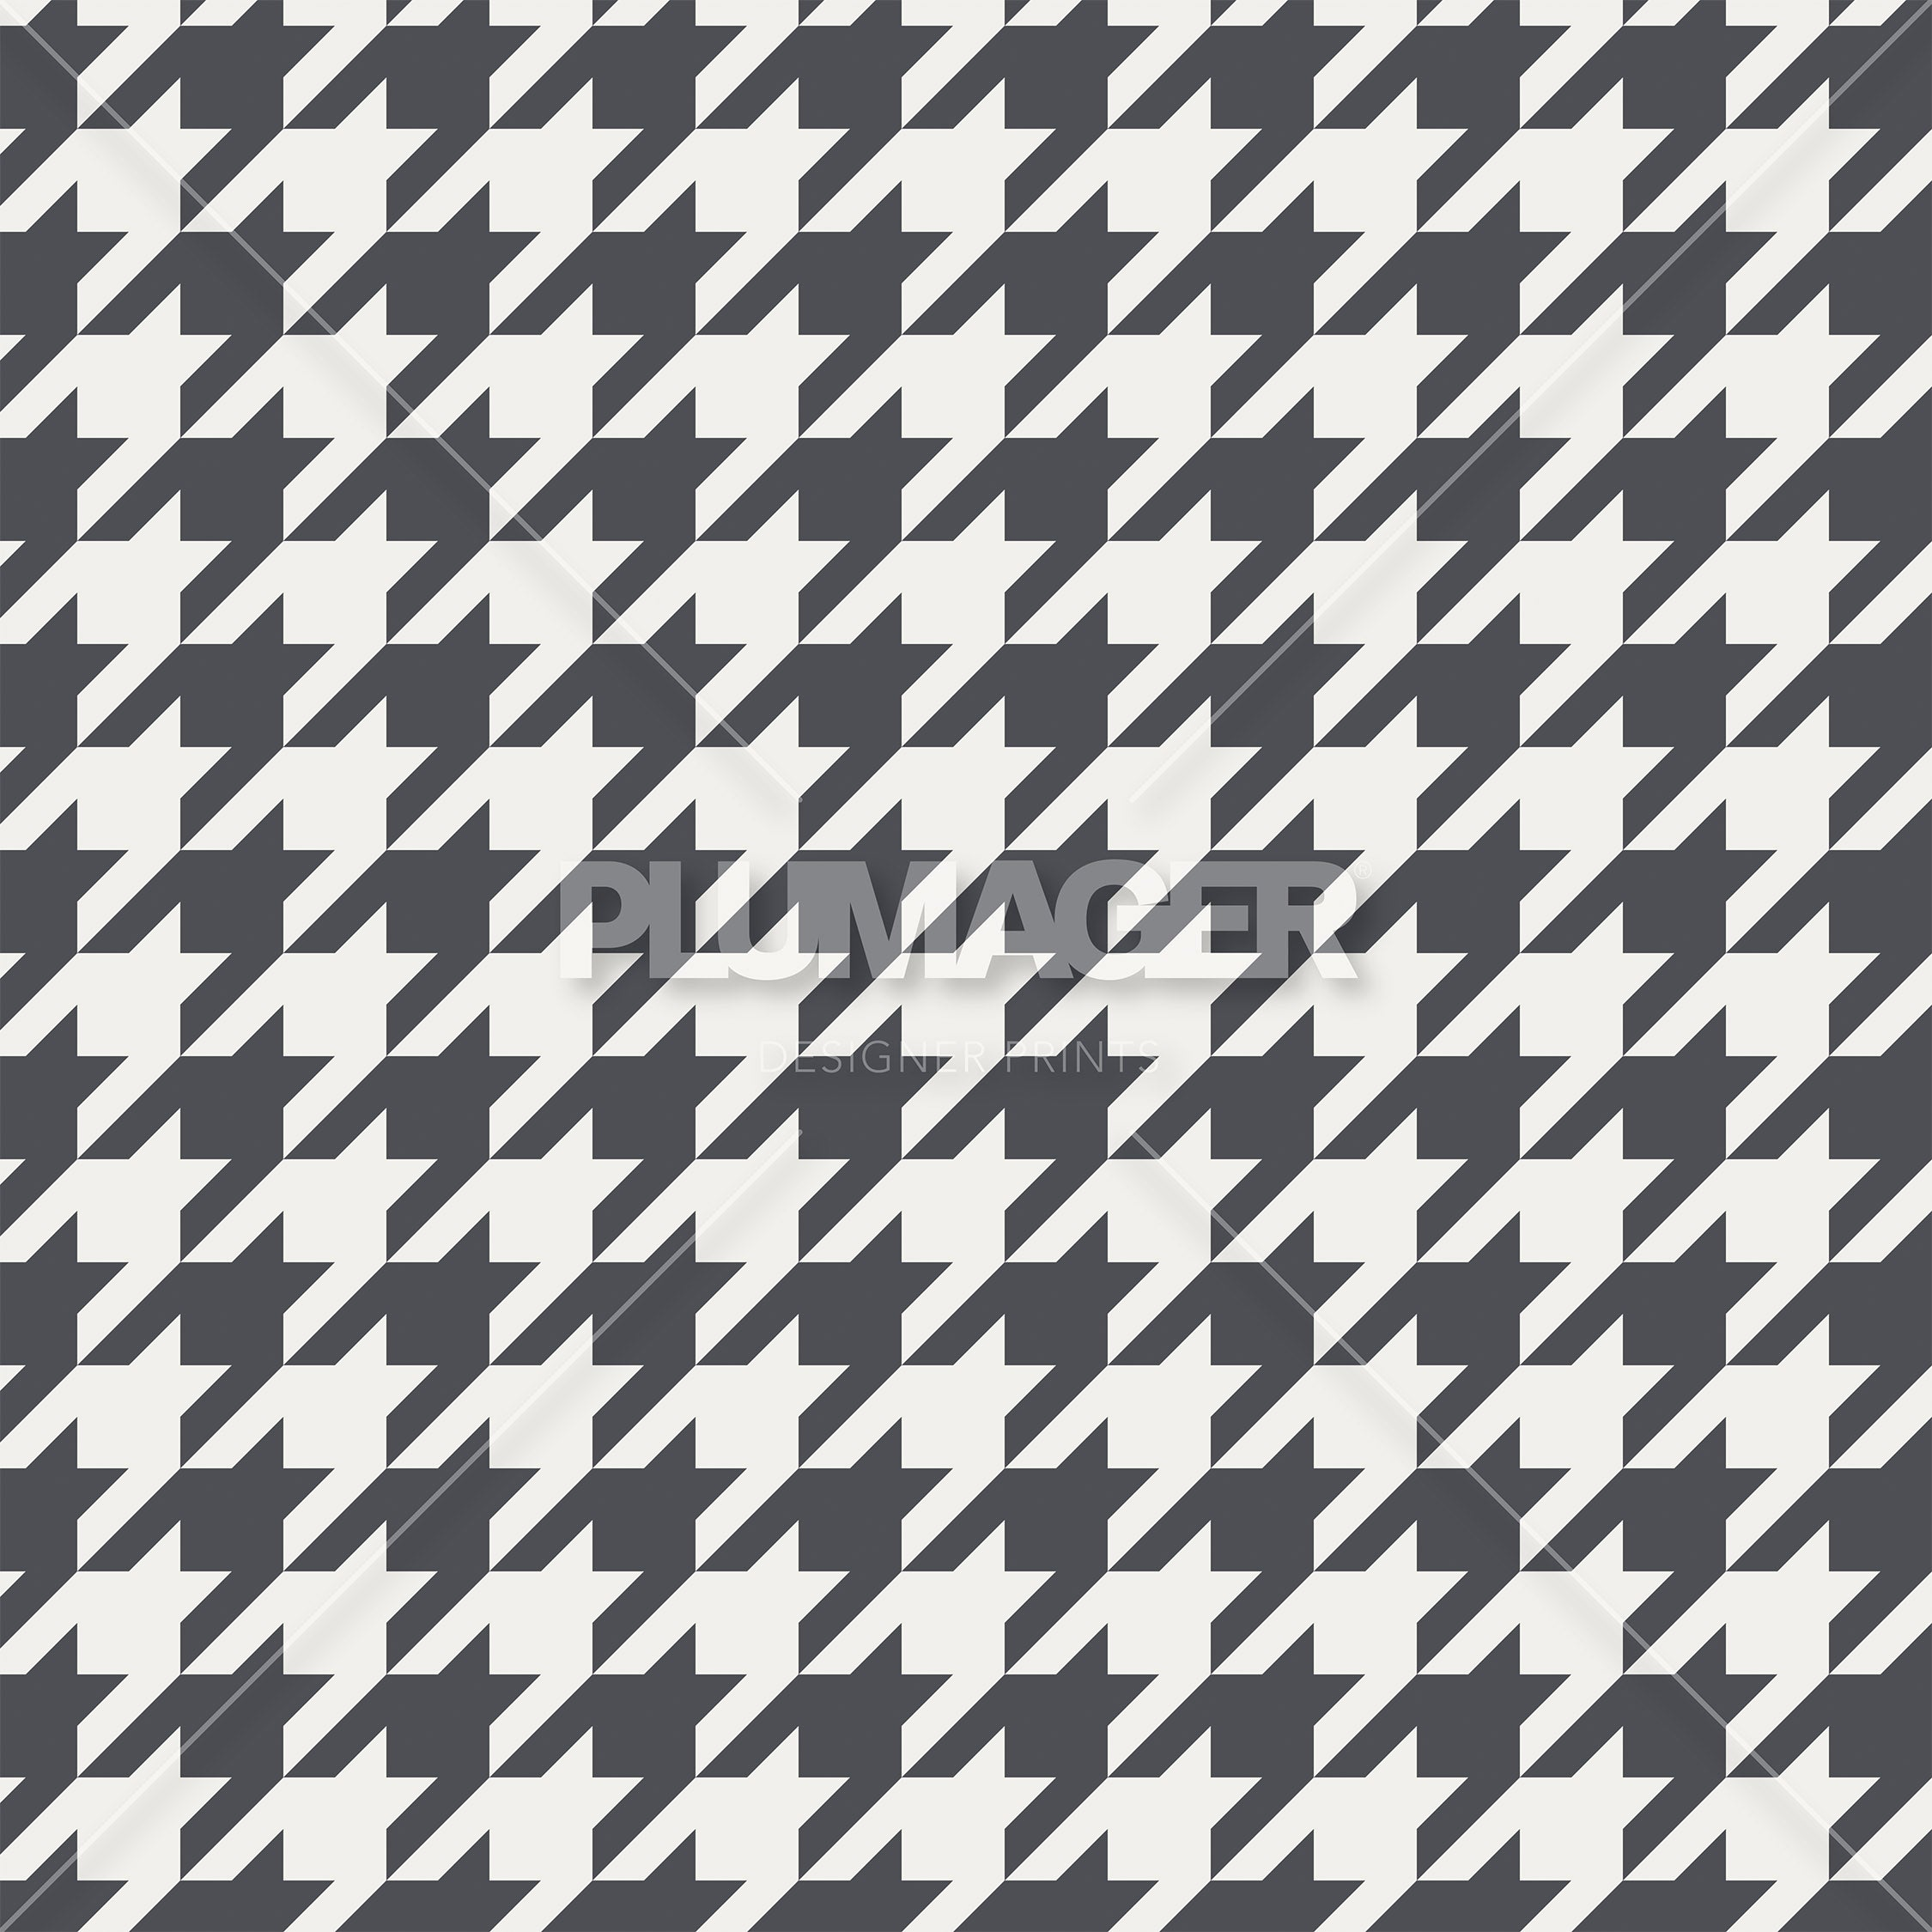 ic: Perfect Houndstooth - PLPL2047